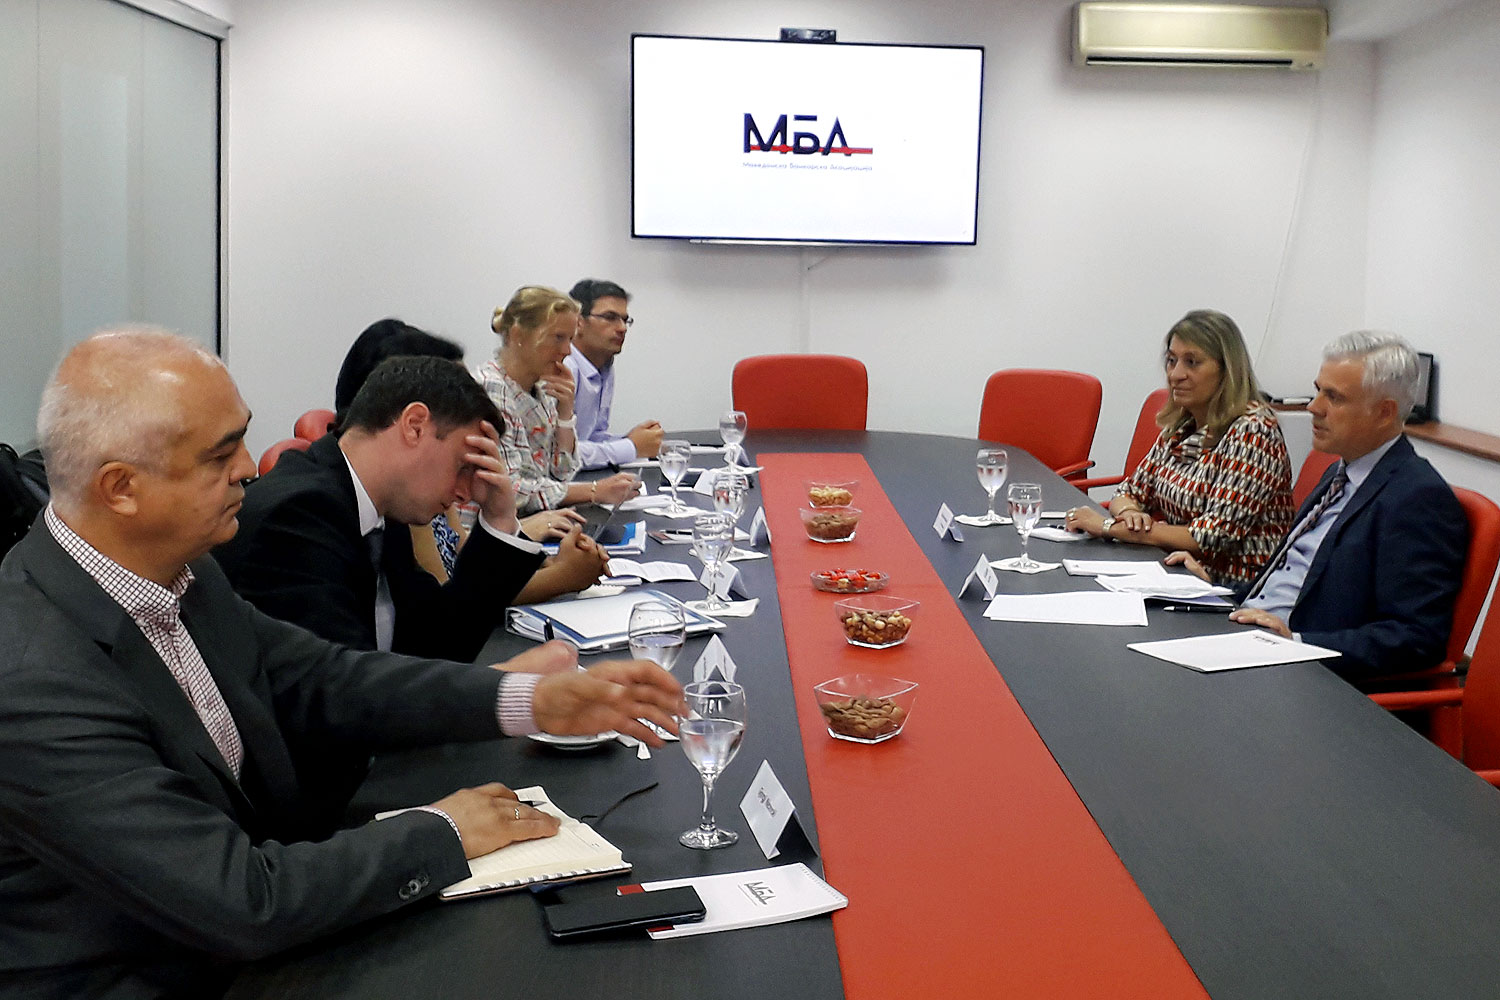 Meeting of the MBA's presidency with the IMF mission – MBA